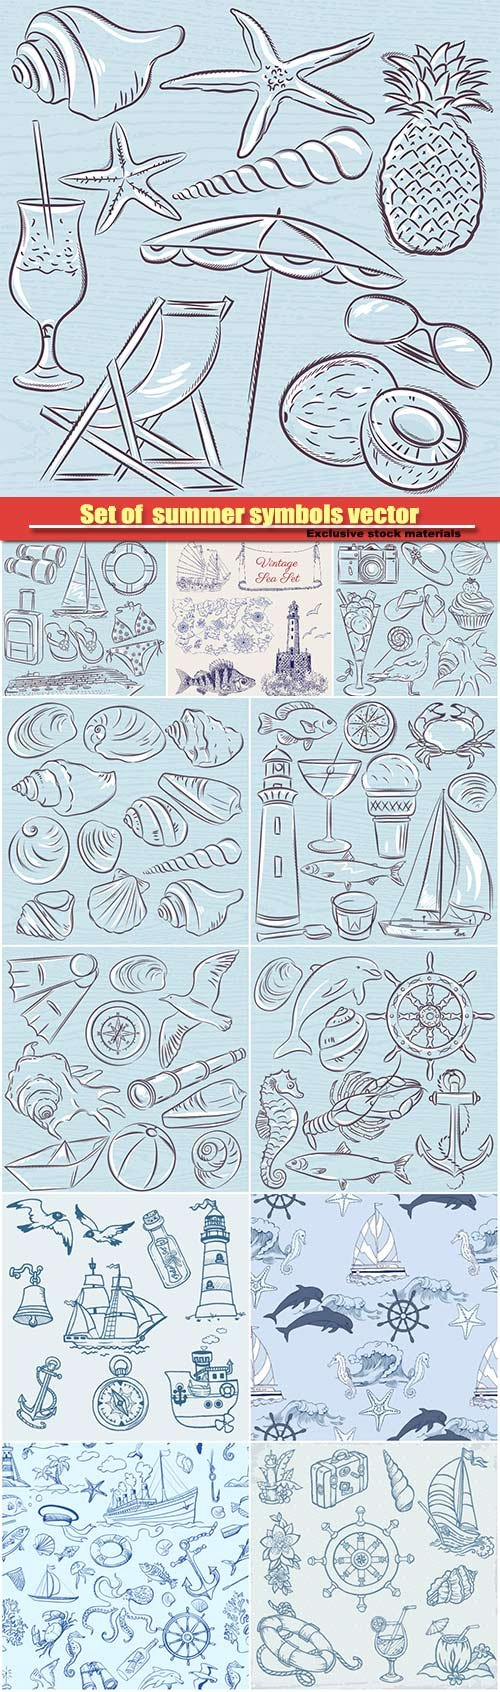 Set of  summer symbols vector illustration, shells, crab, boat, cocktail, lighthouse, ice cream, bucket, fish